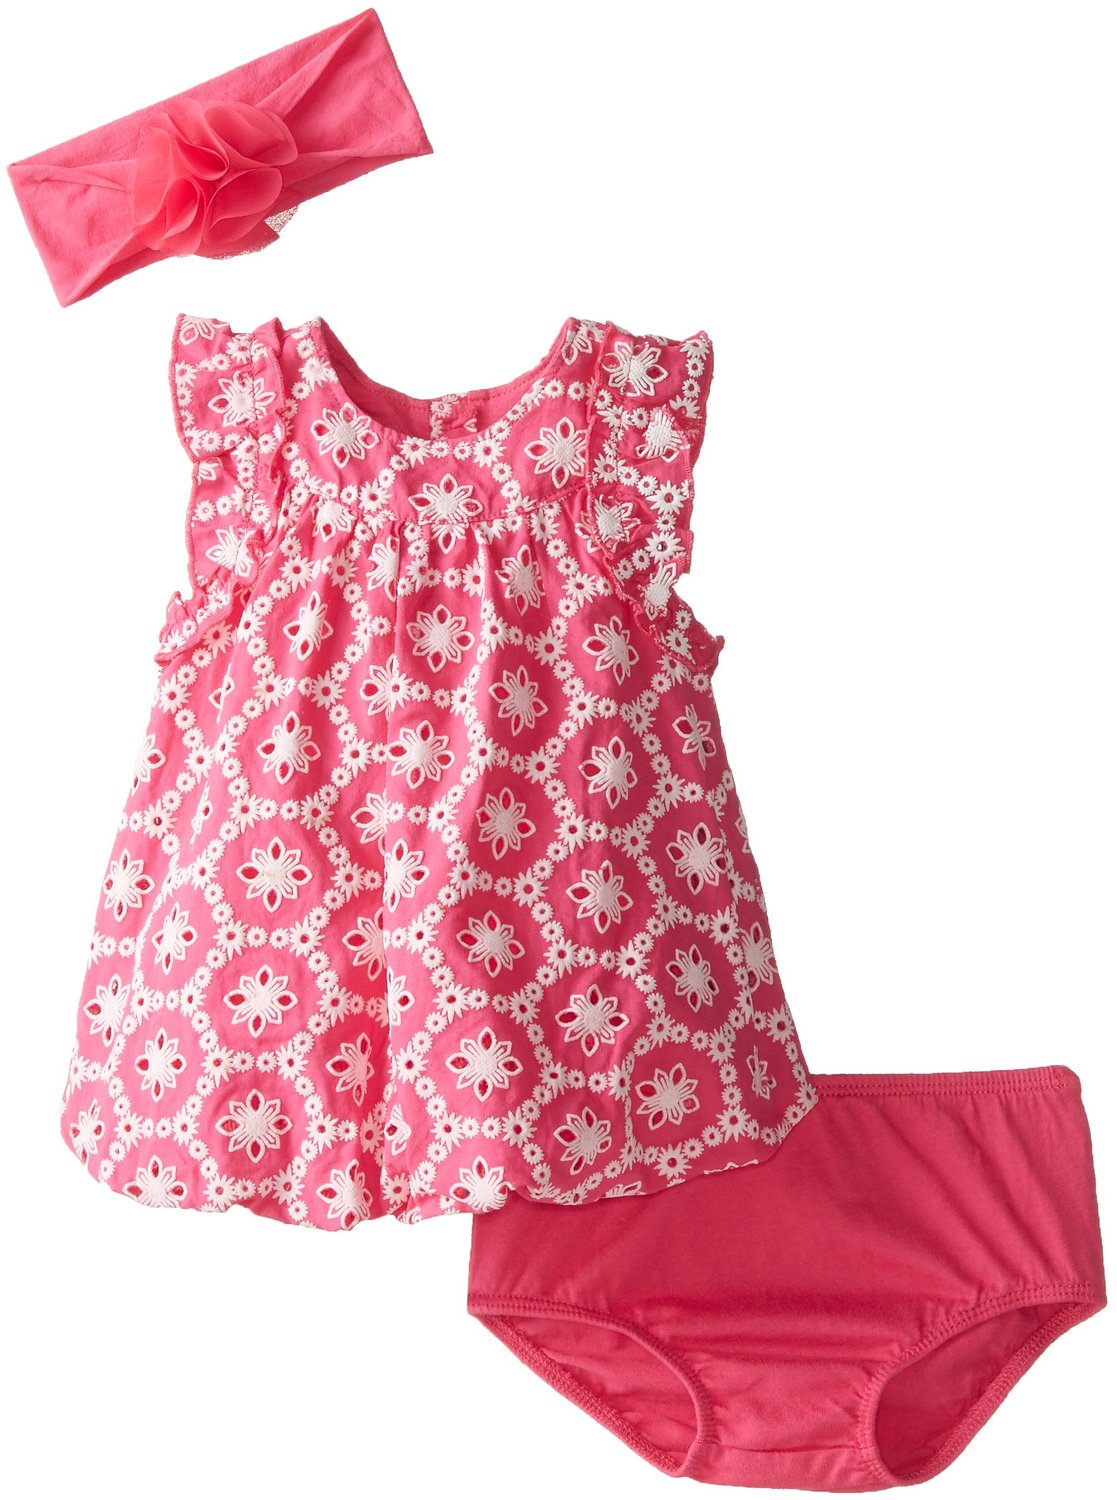 Fun Ways To Find Cheap Baby Clothes